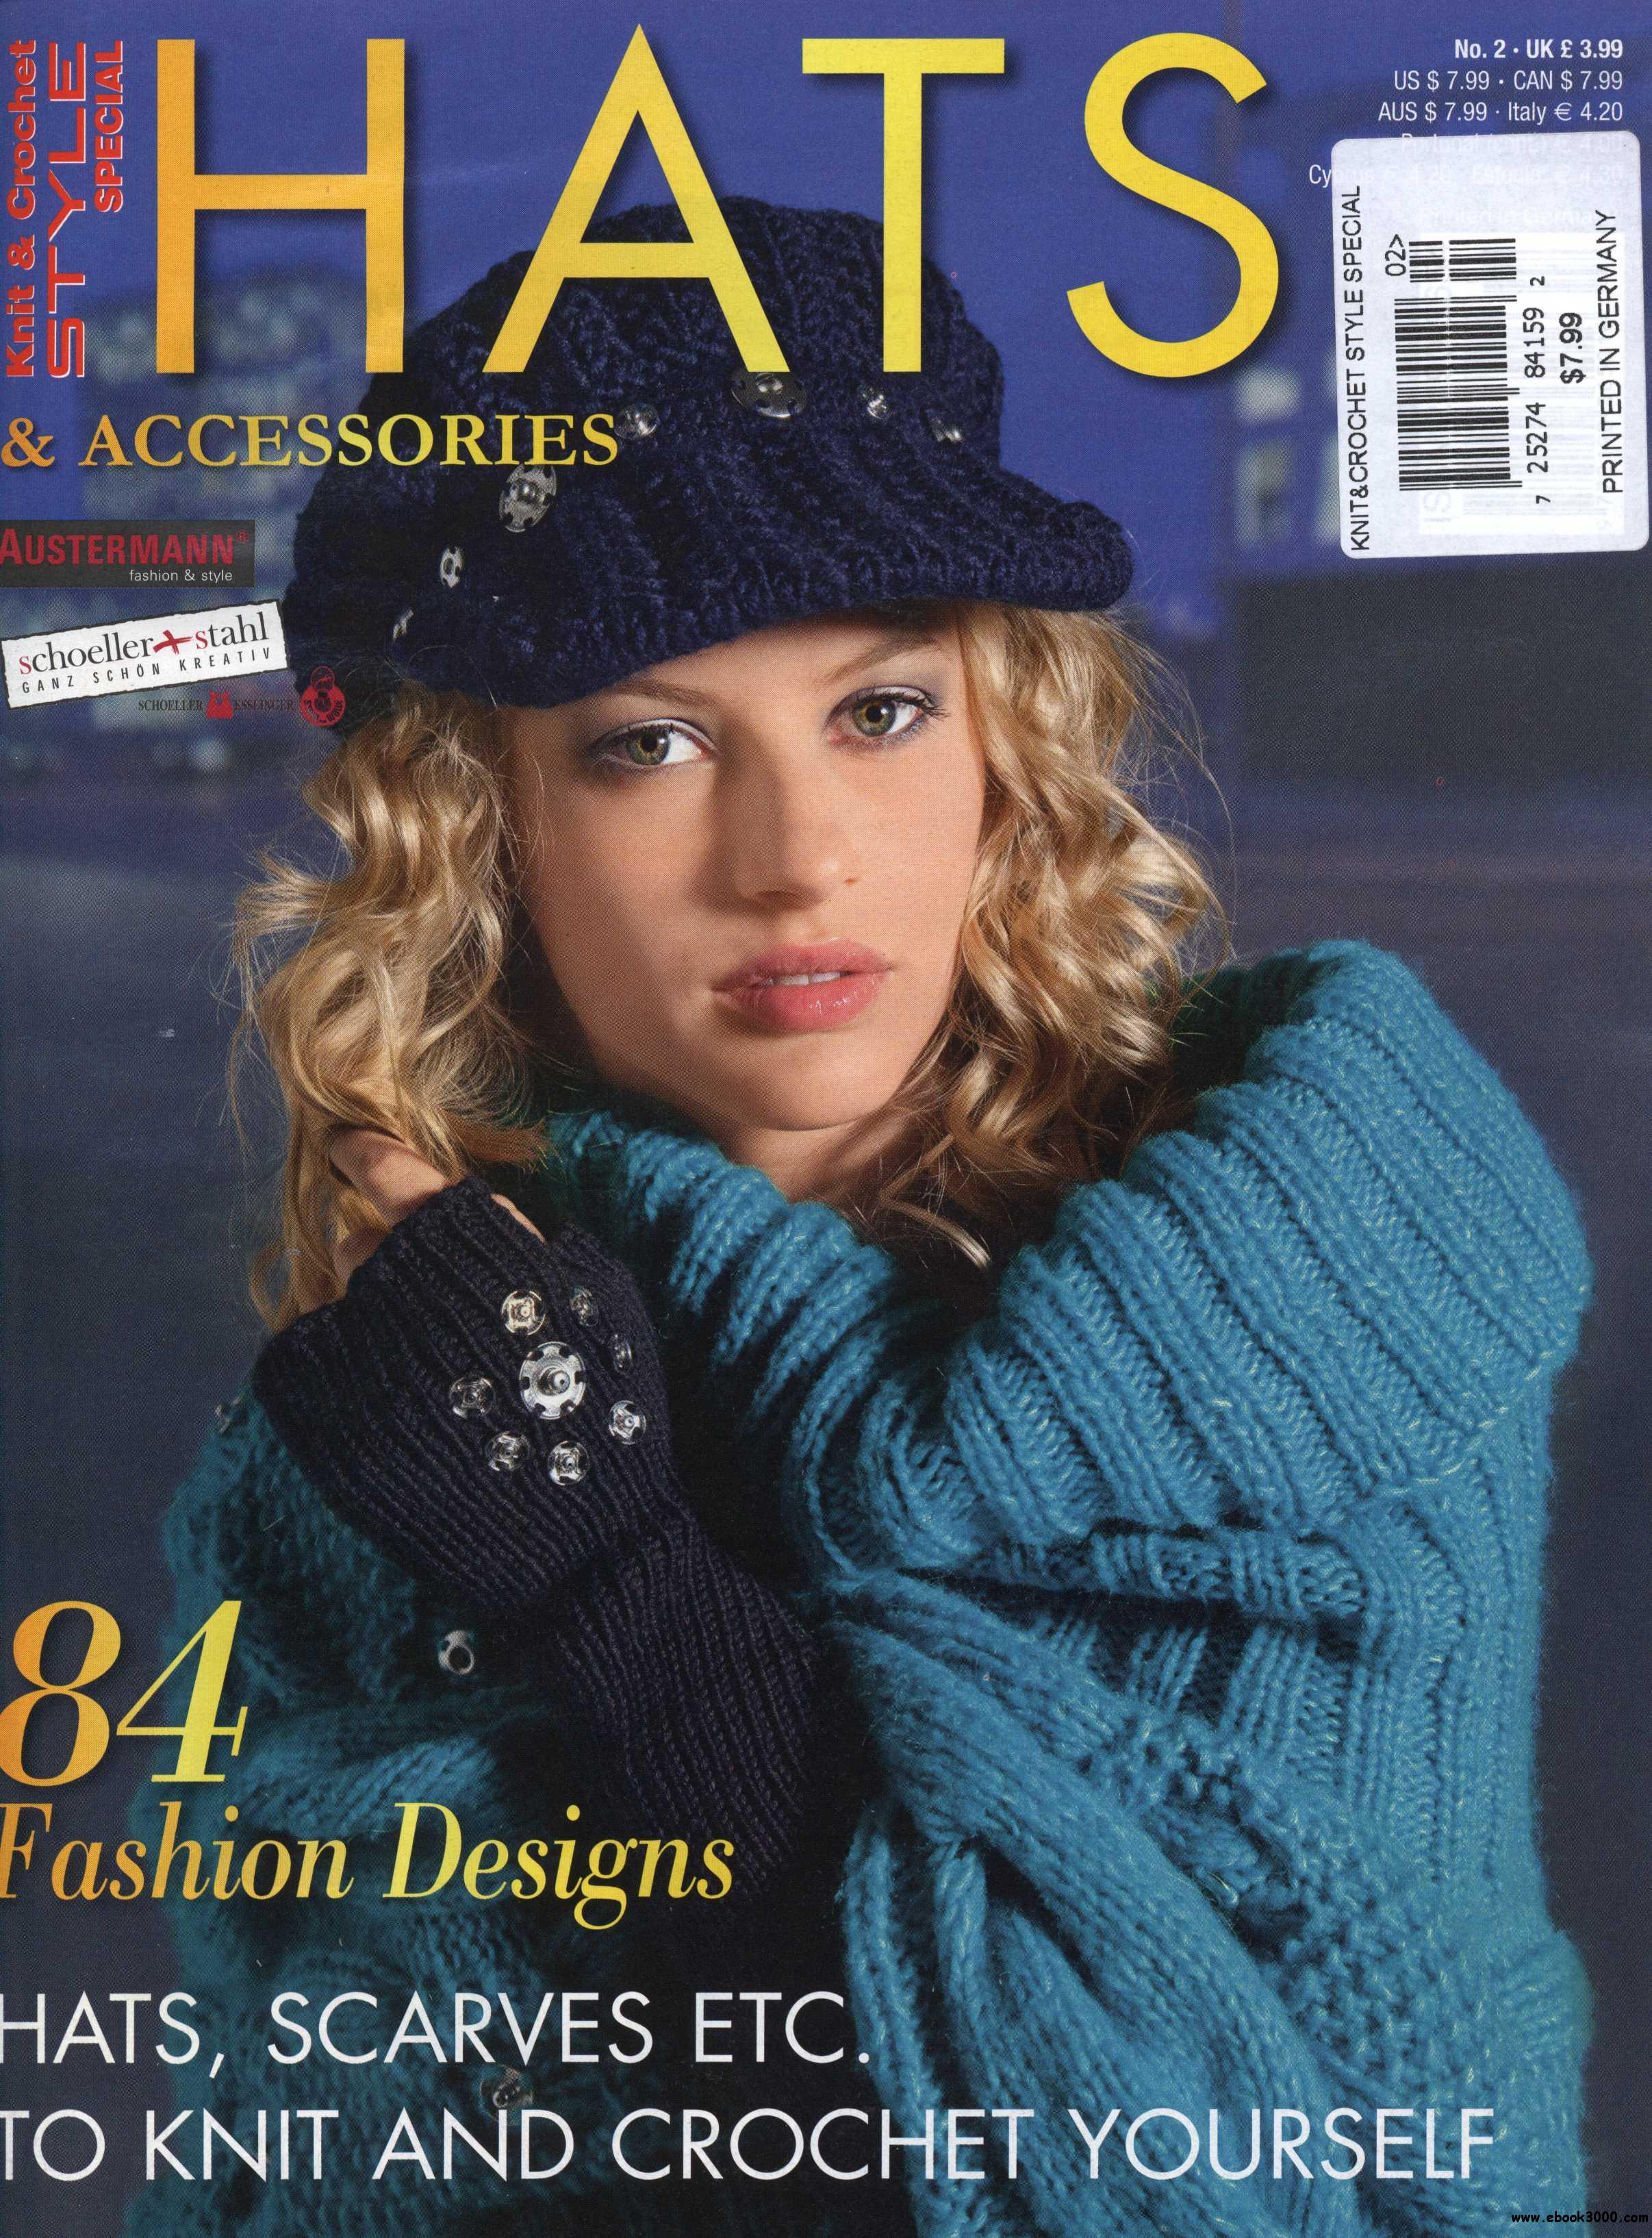 Hats & Accessories No 2 2011 free download